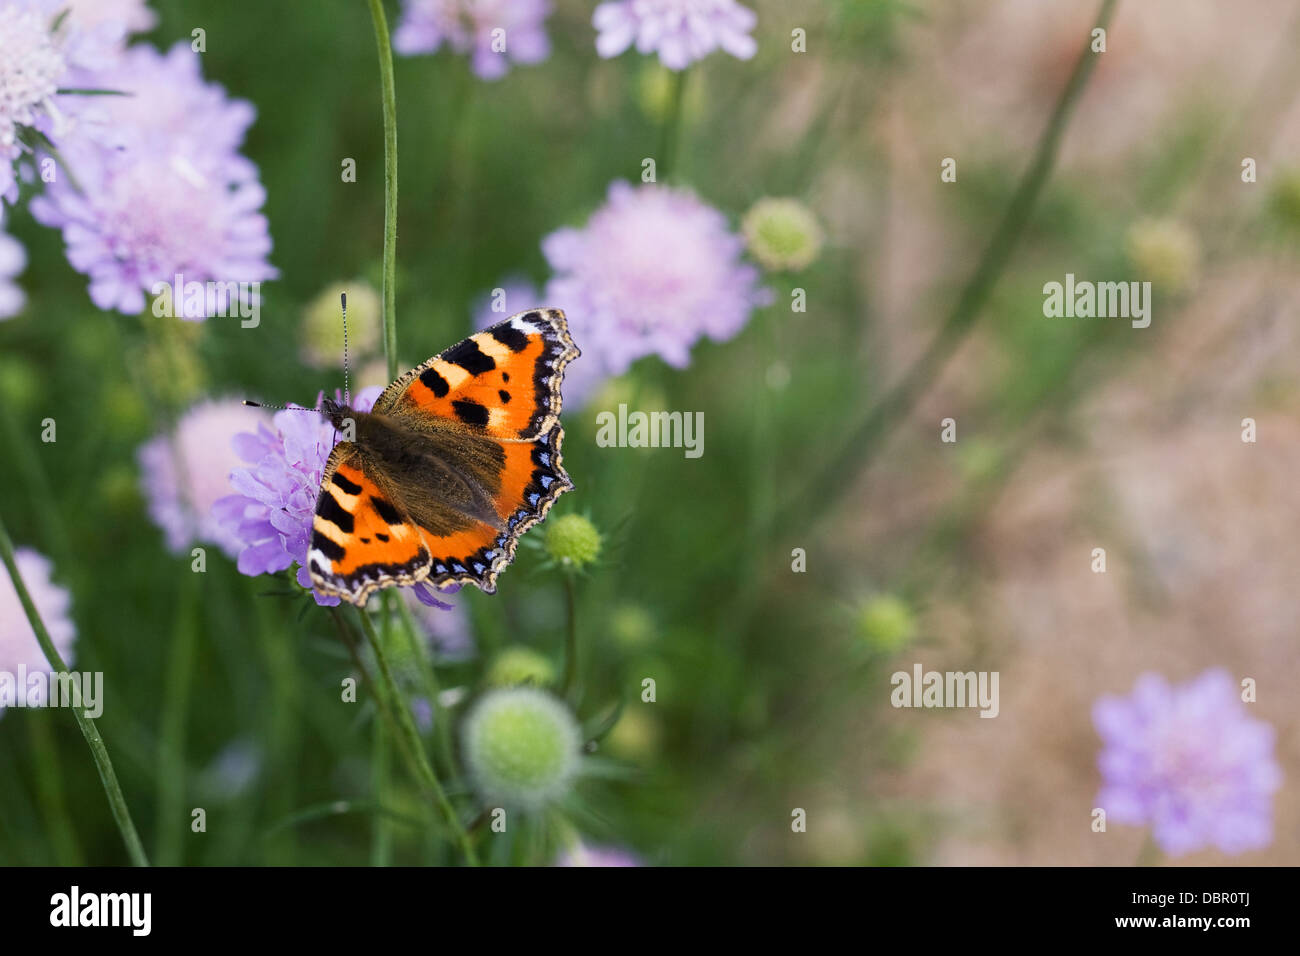 Aglais urticae. Small tortoiseshell butterfly on scabious flower. - Stock Image